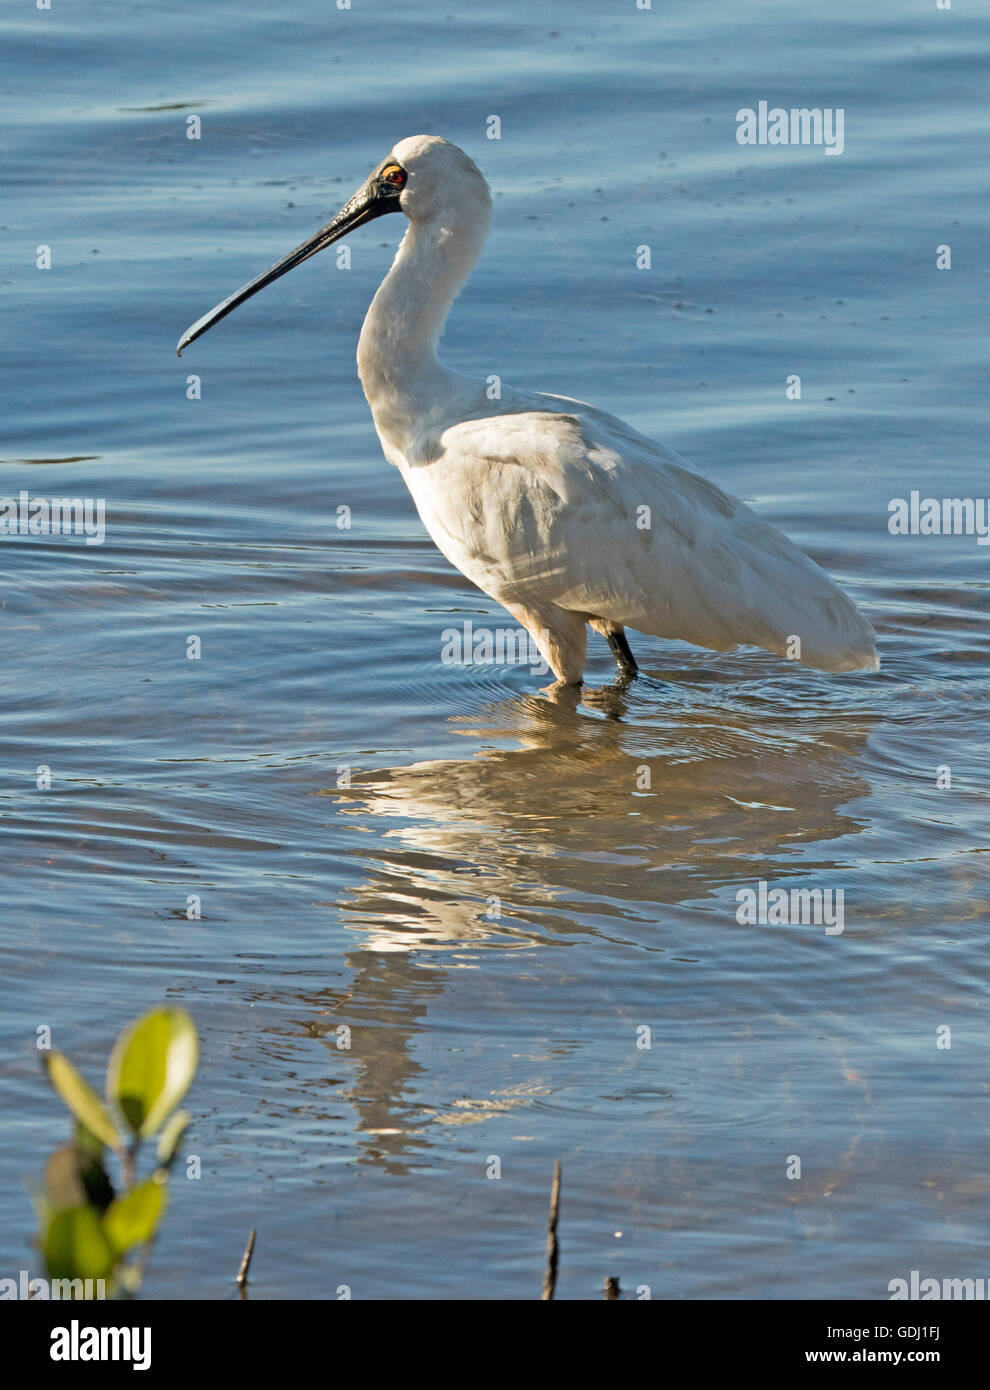 Royal spoonbill Platalea regia with unique bill wading & reflected in mirror surface of blue water of ocean - Stock Image